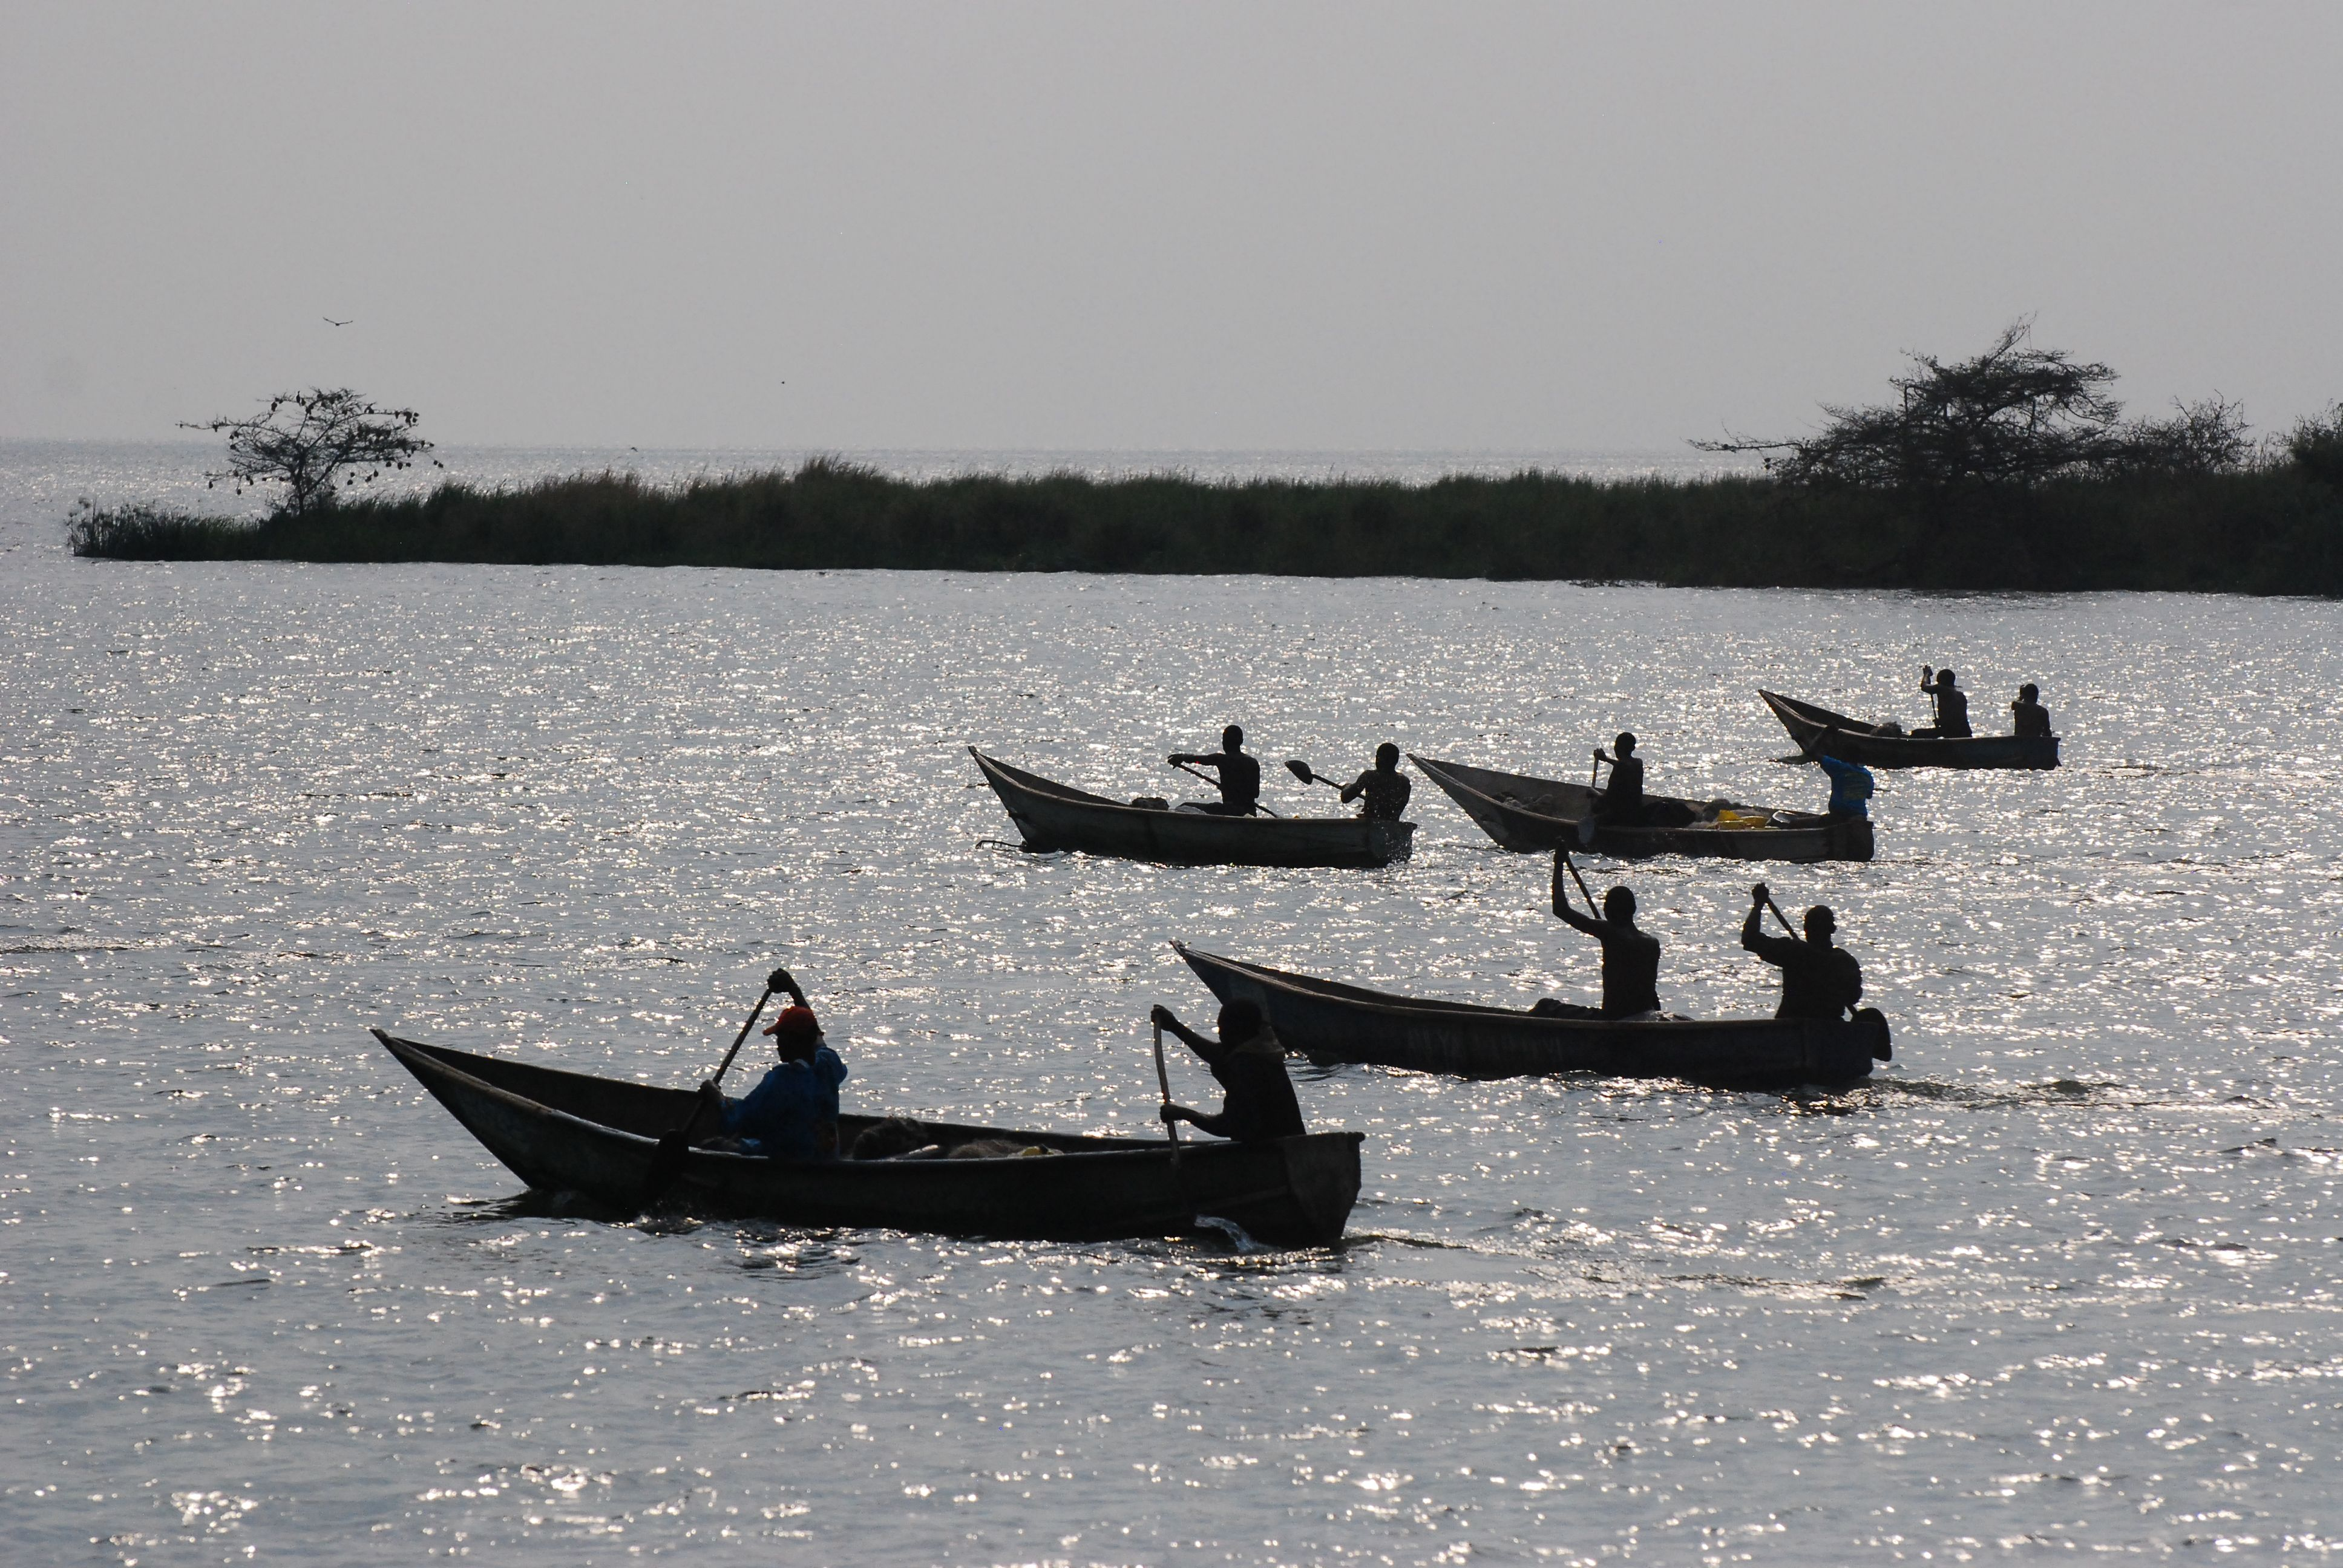 Nature and communities: Canoe rides on Lake Albert in Uganda. Photo by Kirchmann